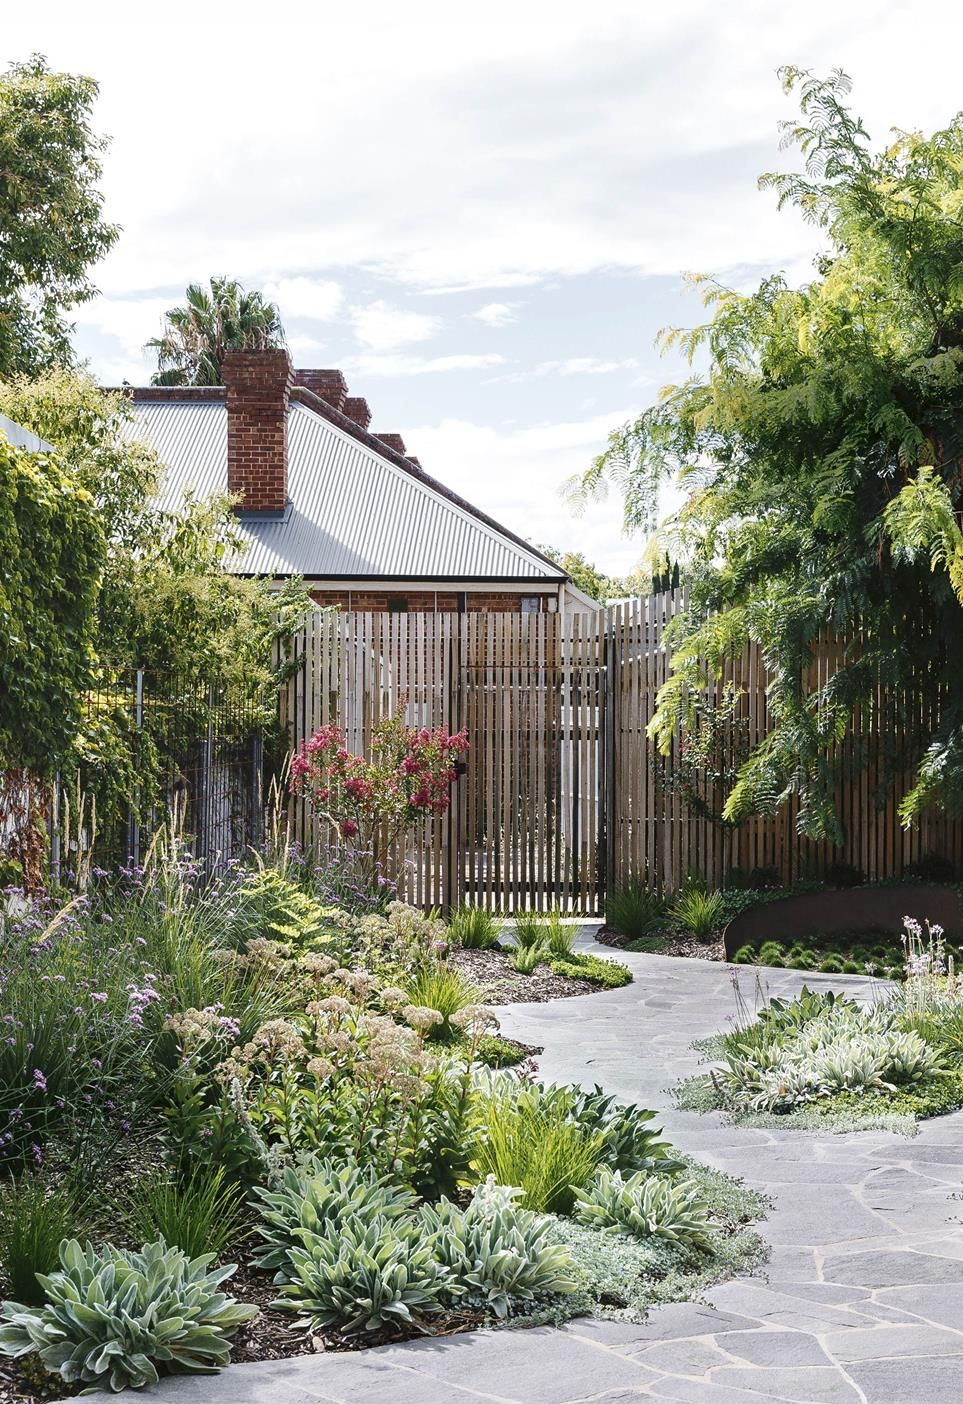 A clever garden path design brought this space together